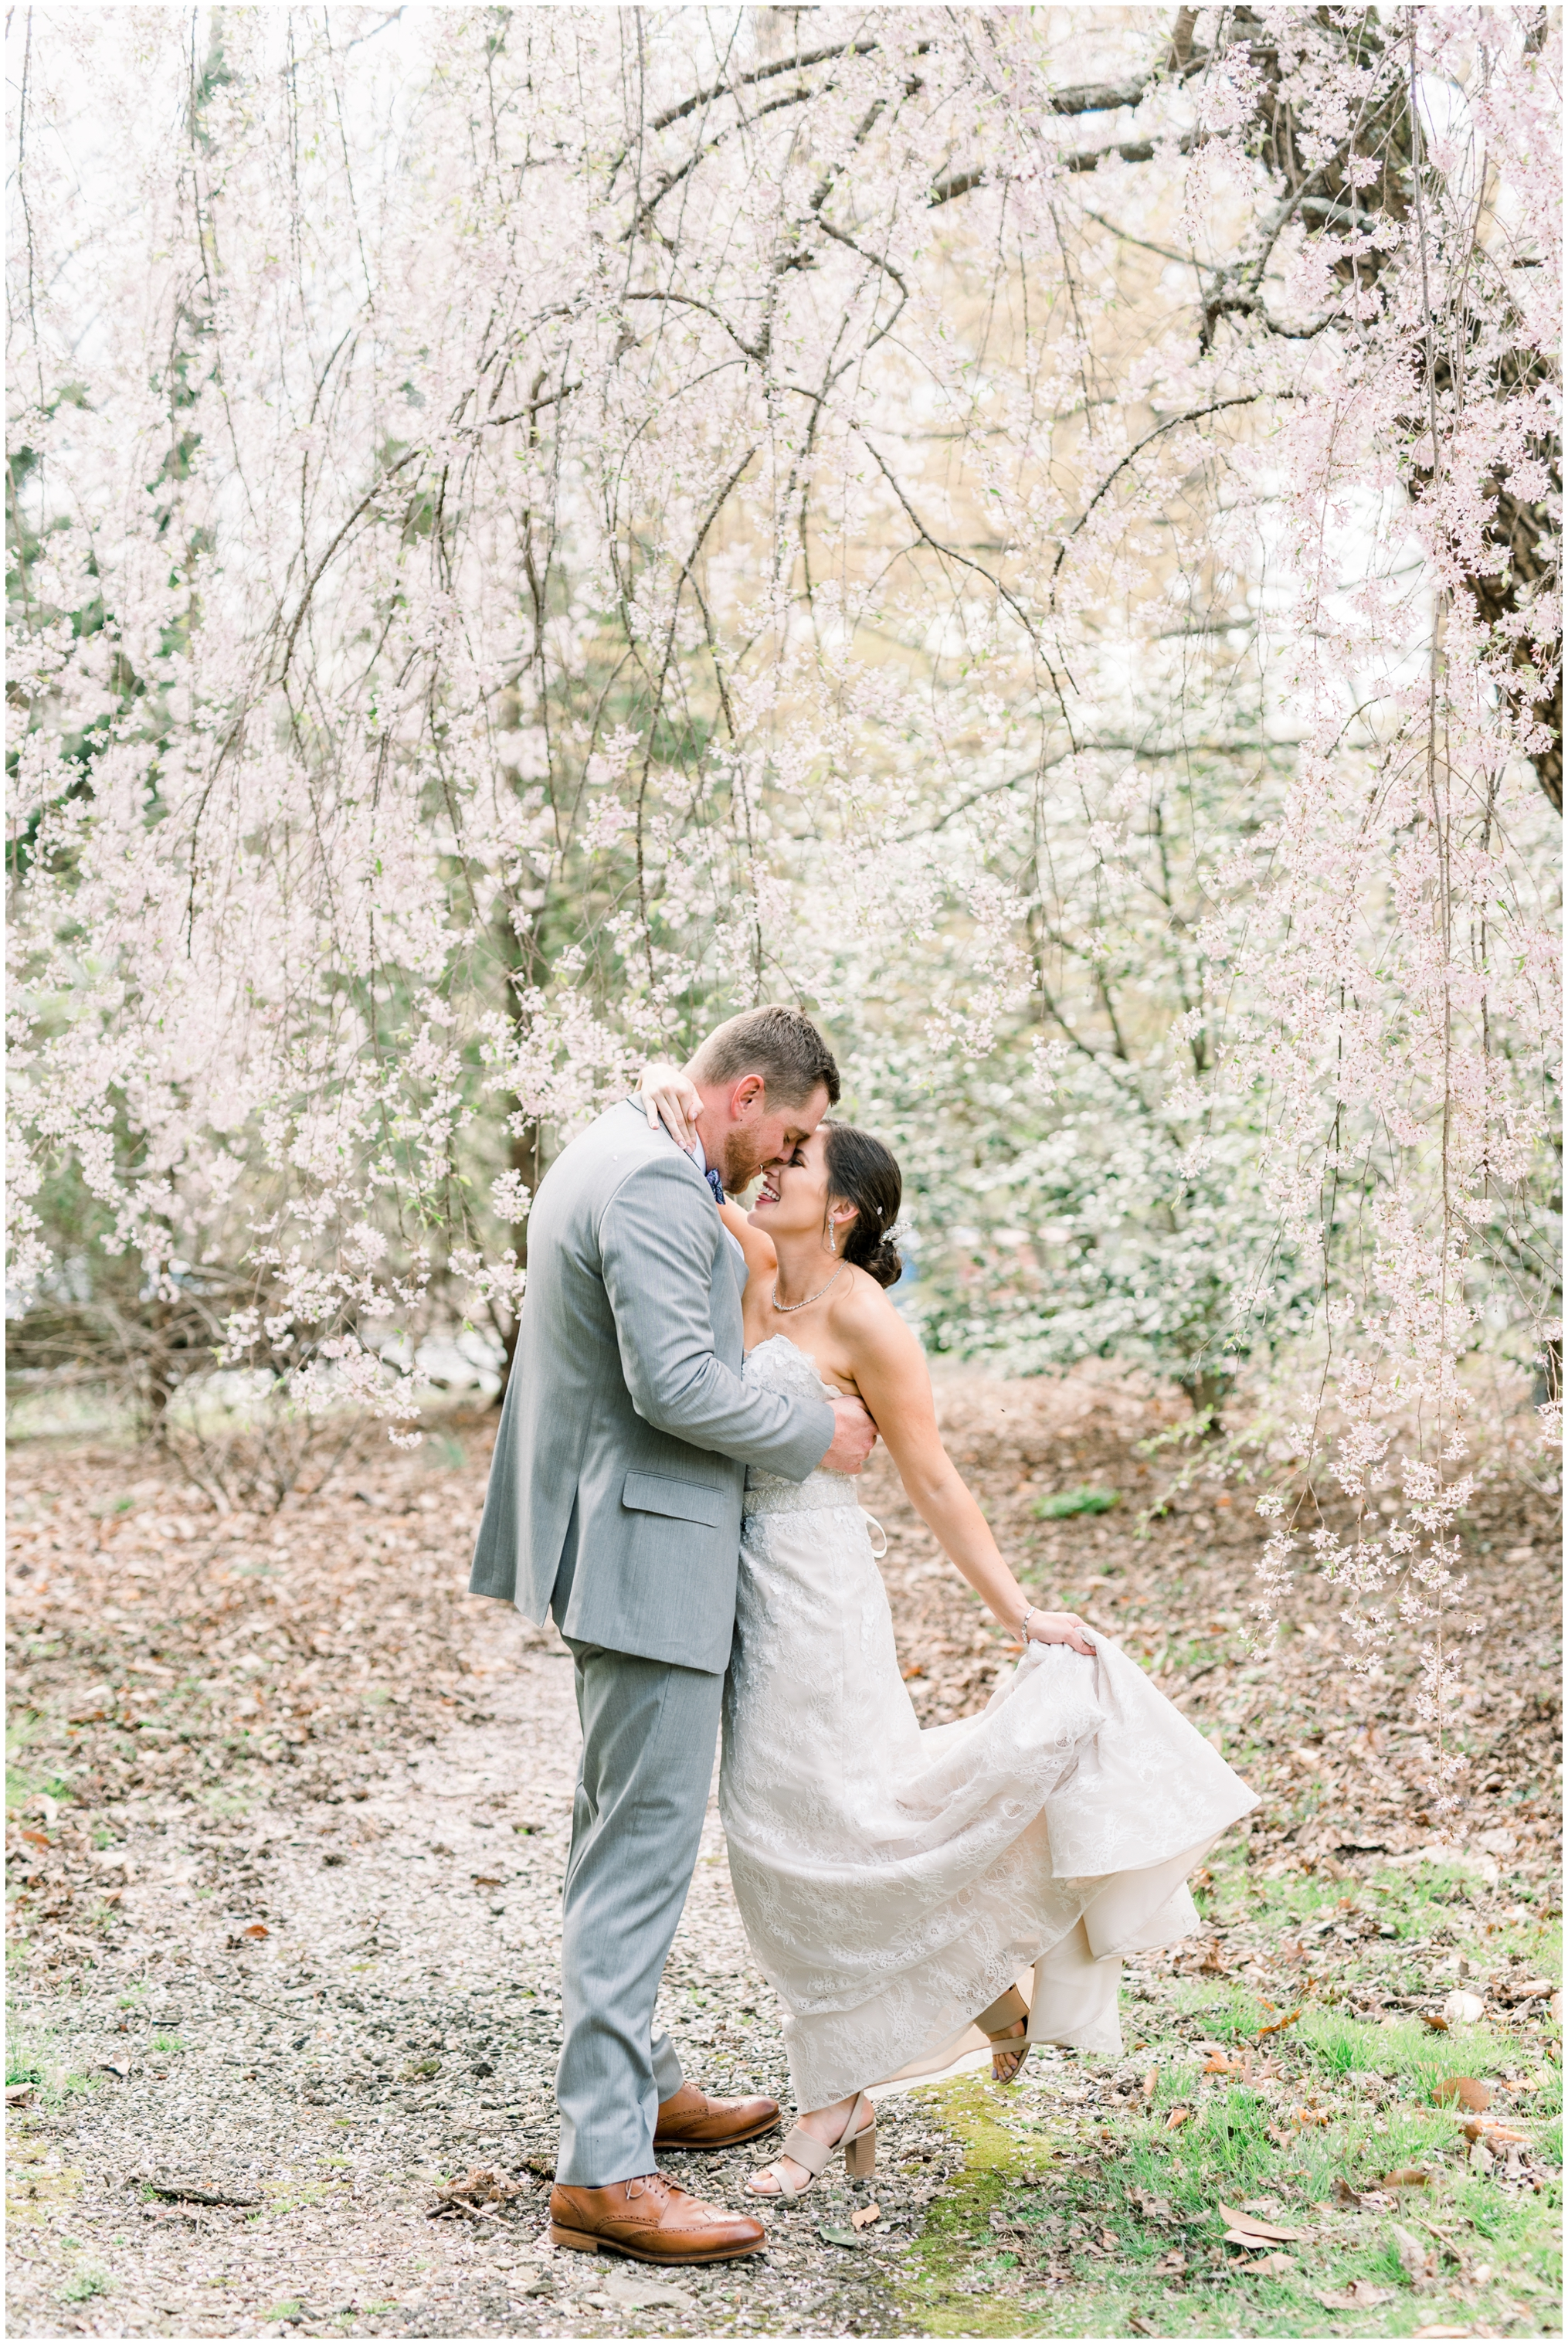 Krista Brackin Photography | April Wedding at The Carriage House at Rockwood Park_0073.jpg